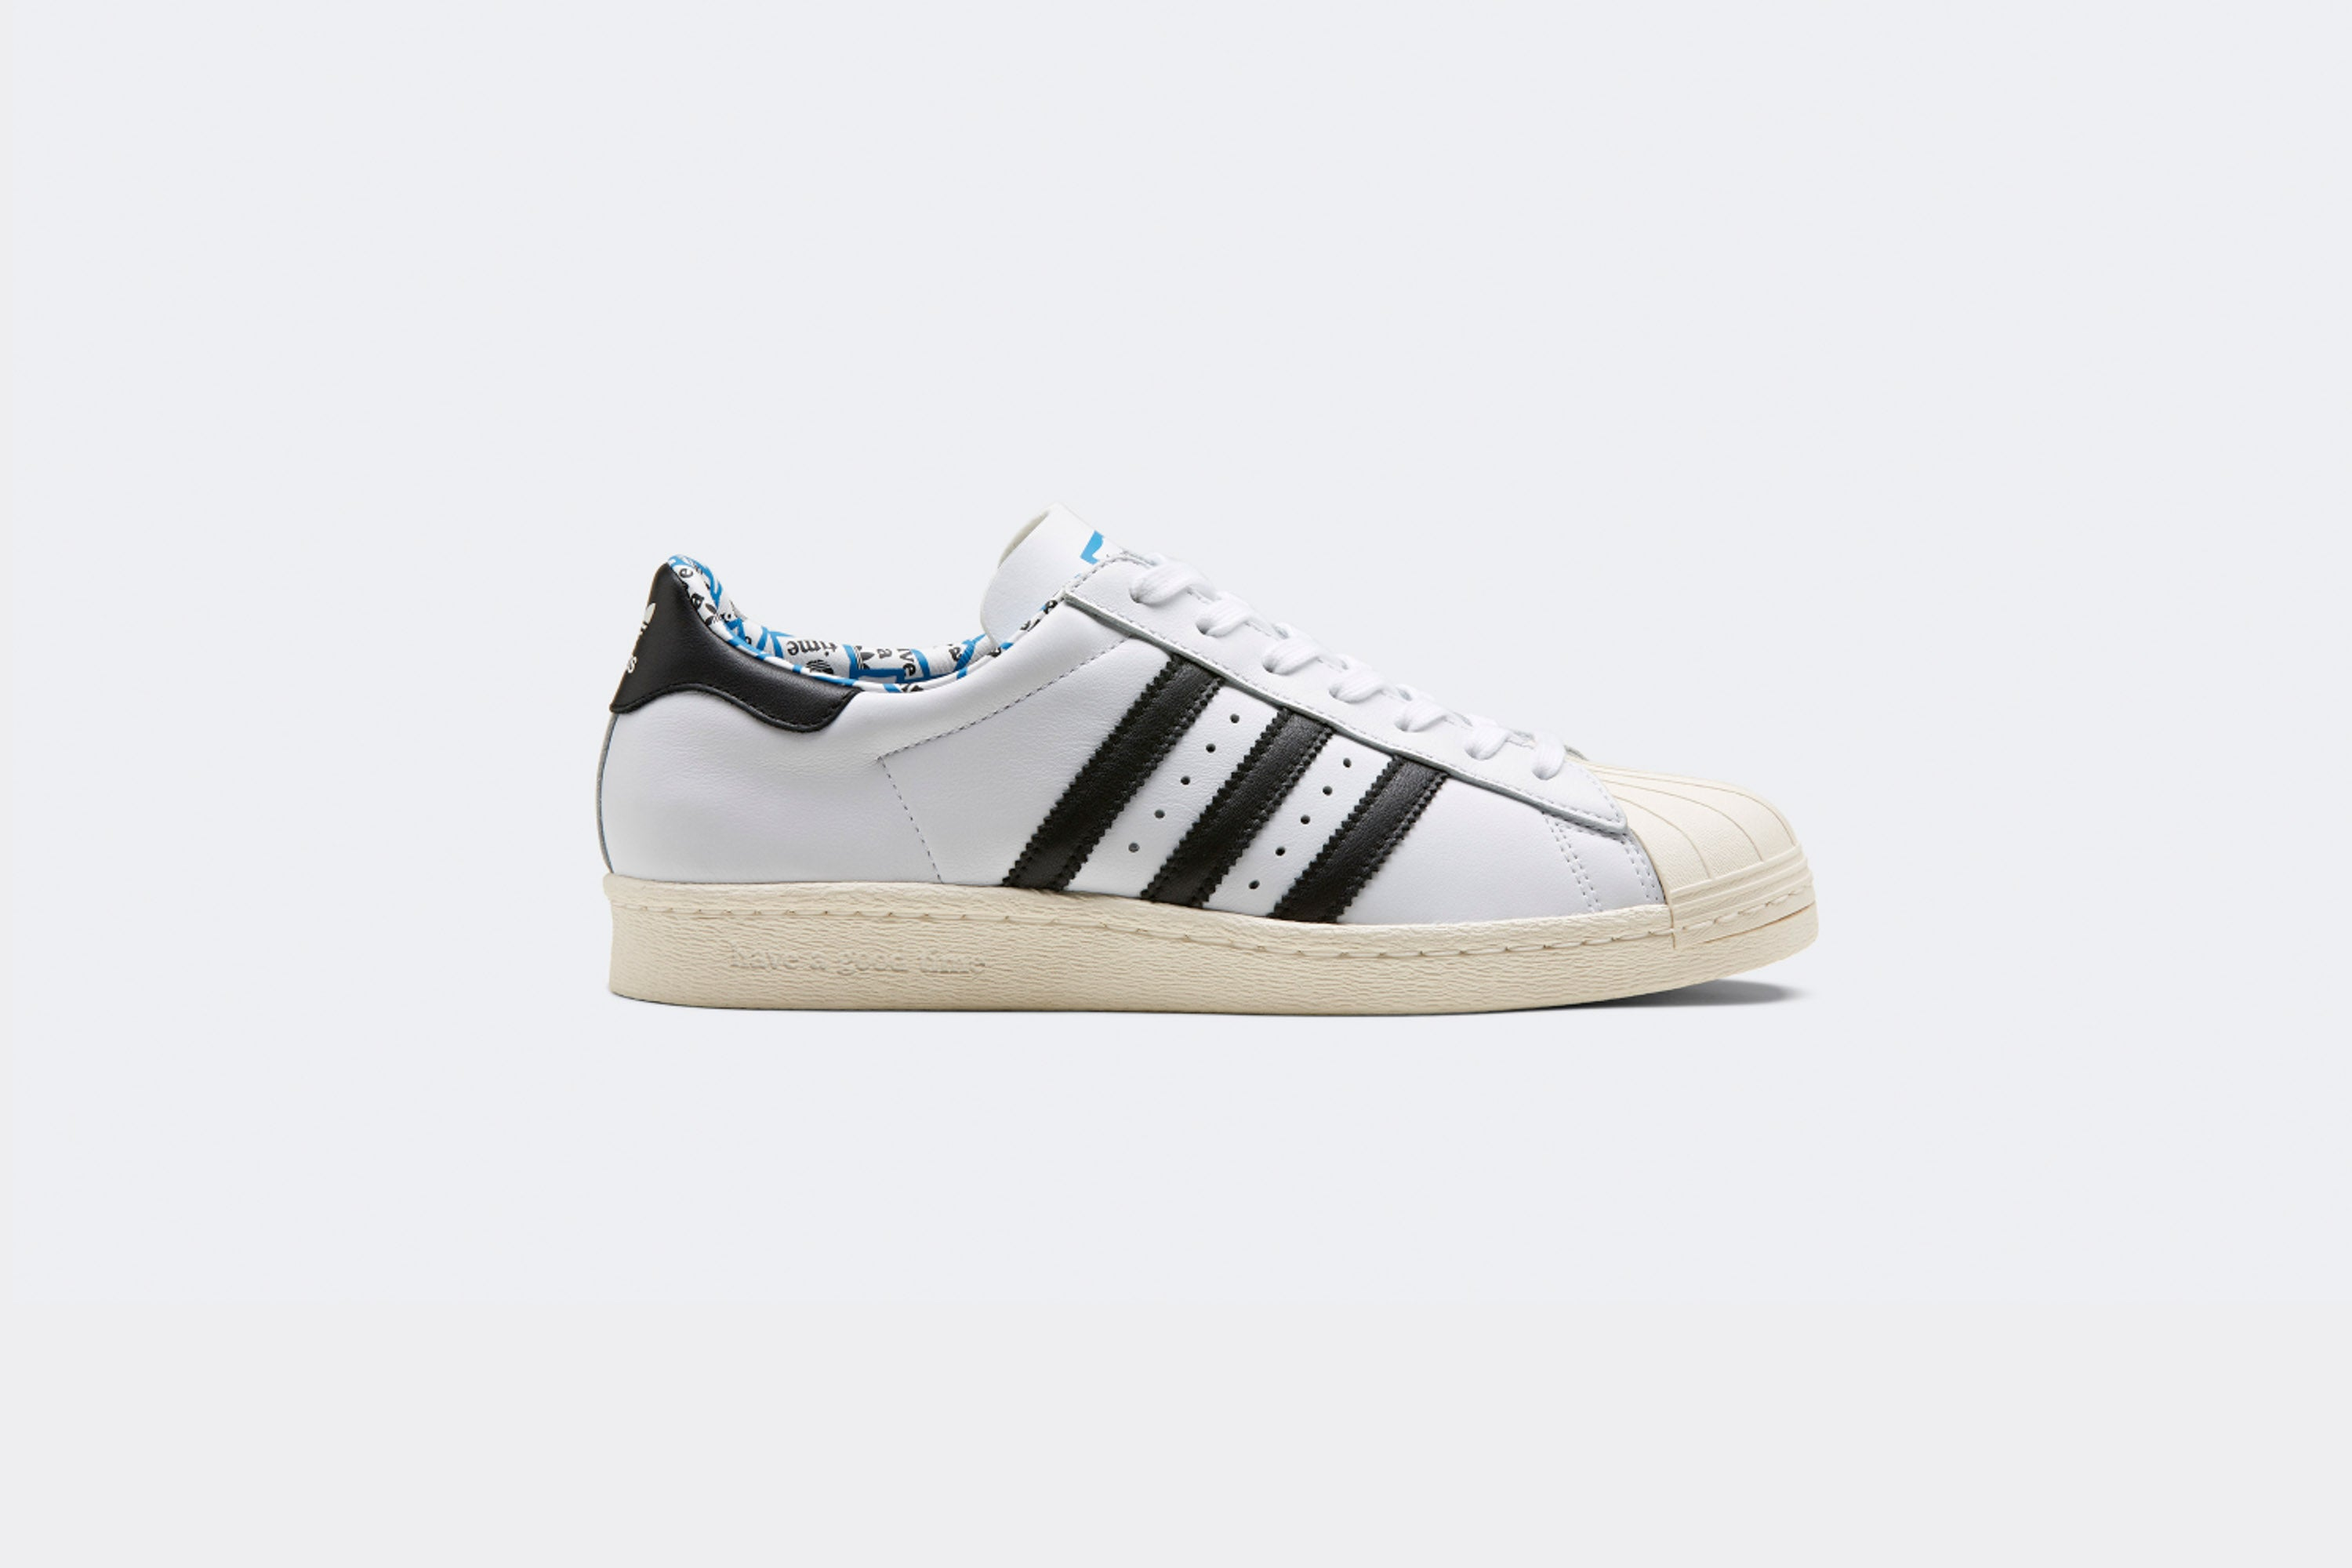 low cost 1a6fc 21d1a Have a Good Time x Adidas SUPERSTAR 80S - Sneaker Politics